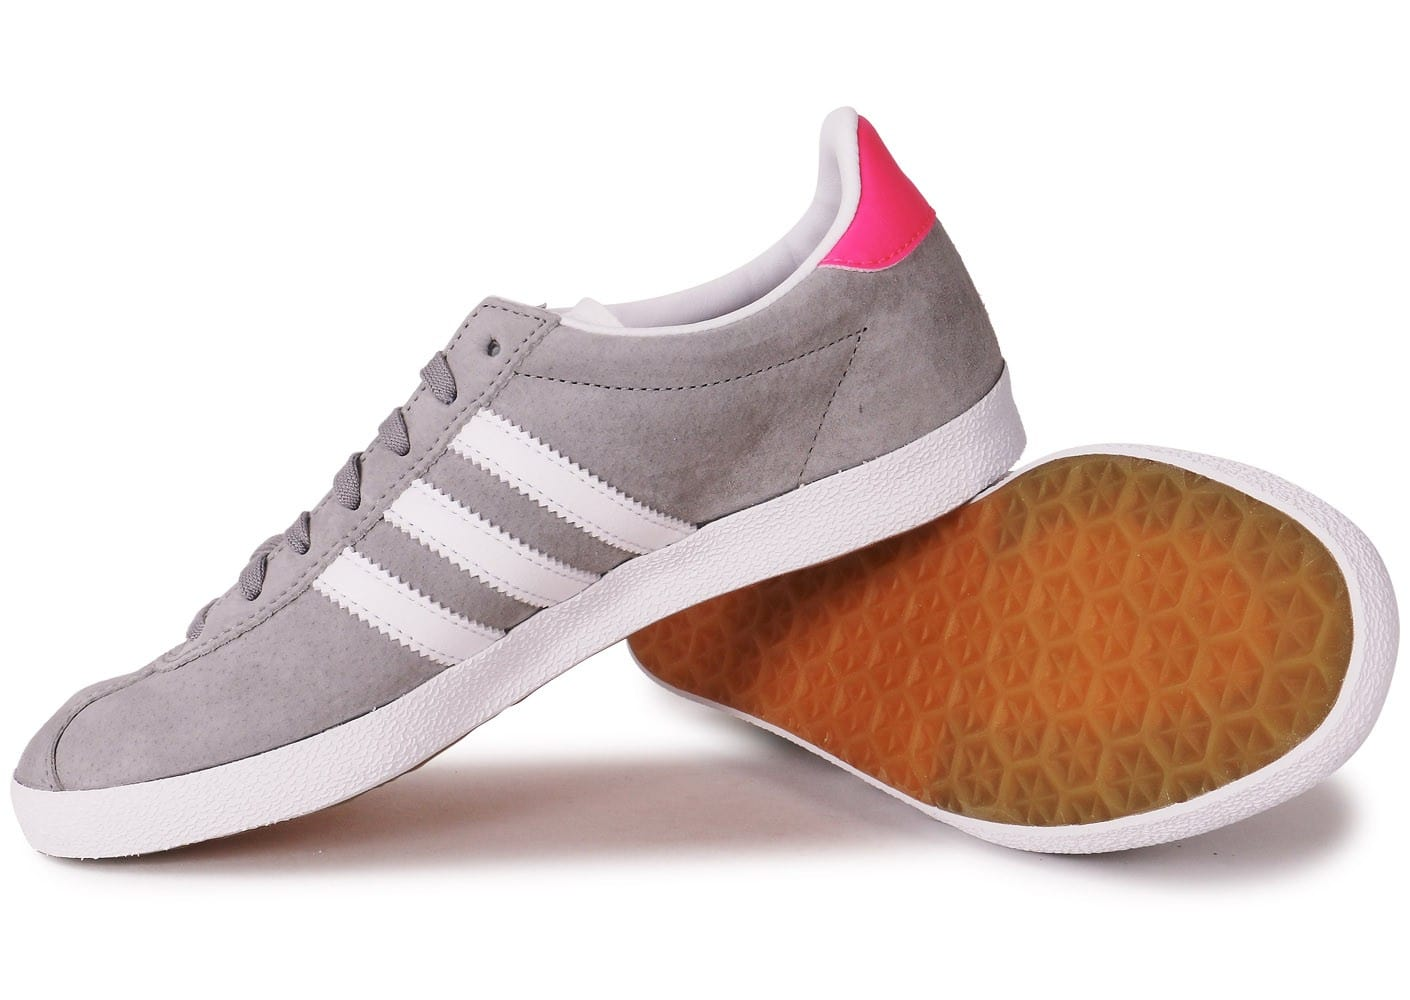 adidas Gazelle OG grise et rose Chaussures adidas Chausport